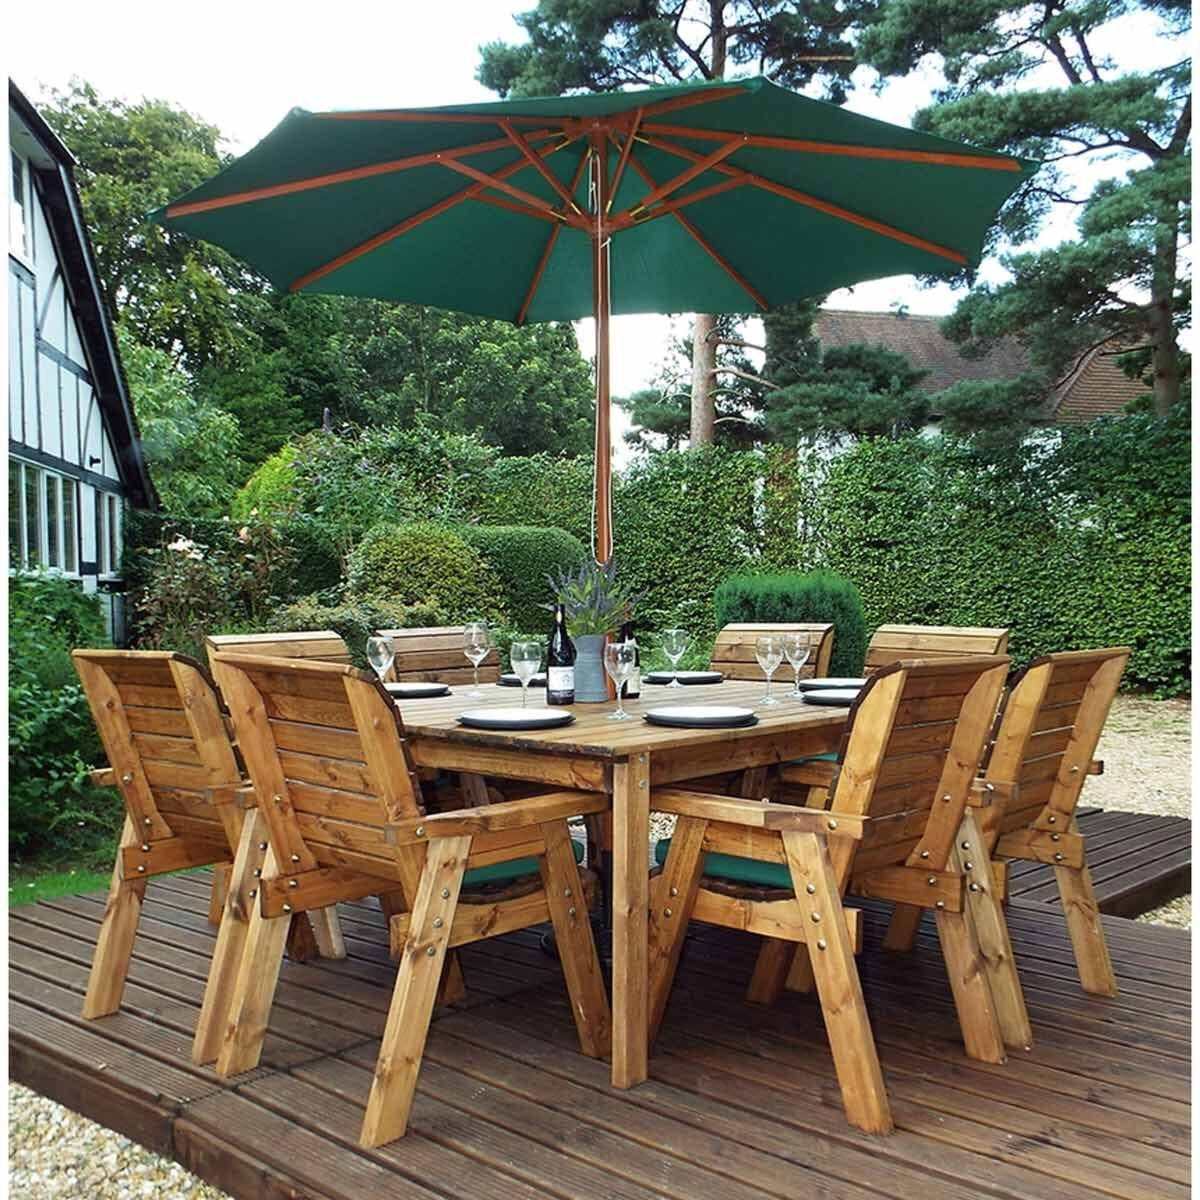 Charles Taylor Eight Seater Square Table Set with Parasol